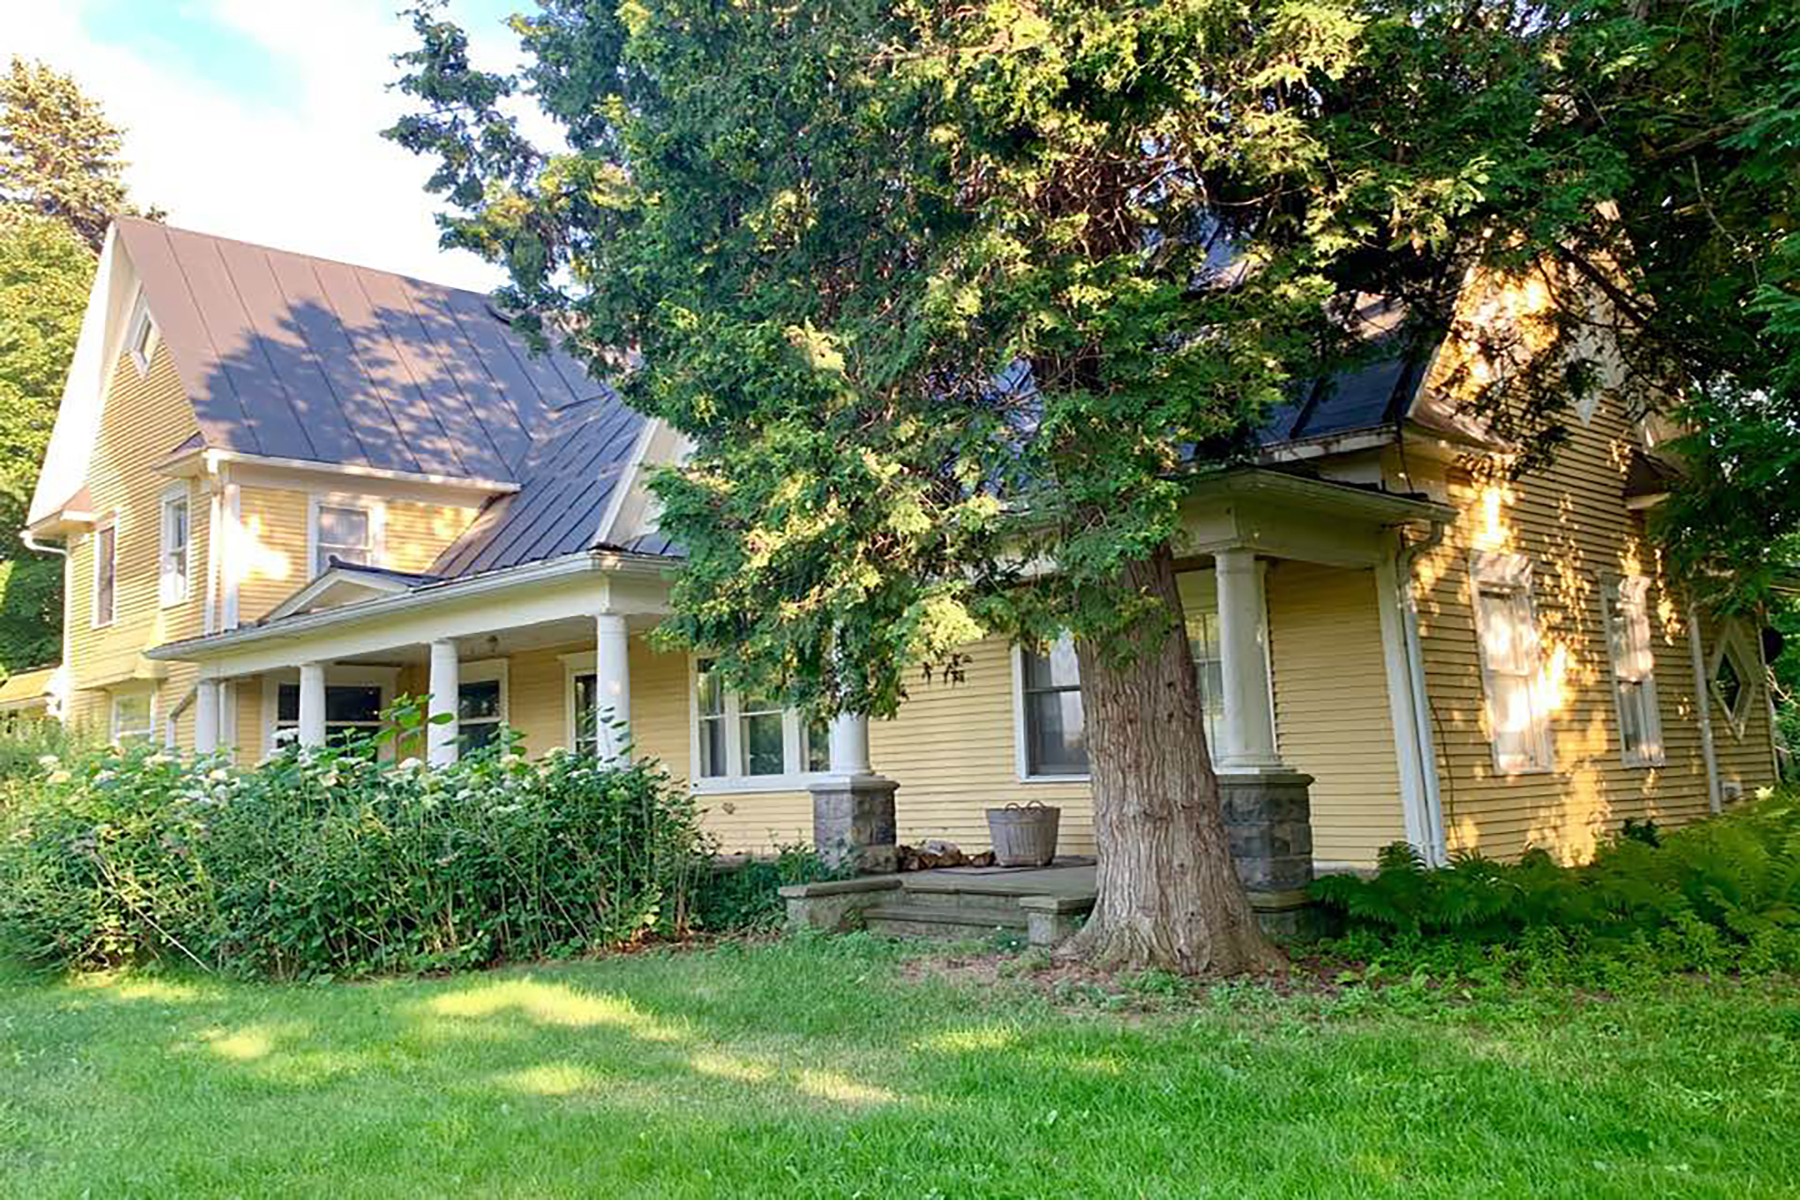 Single Family Homes for Active at Ingham Township 1905 E. Dexter Trail Dansville, Michigan 48819 United States